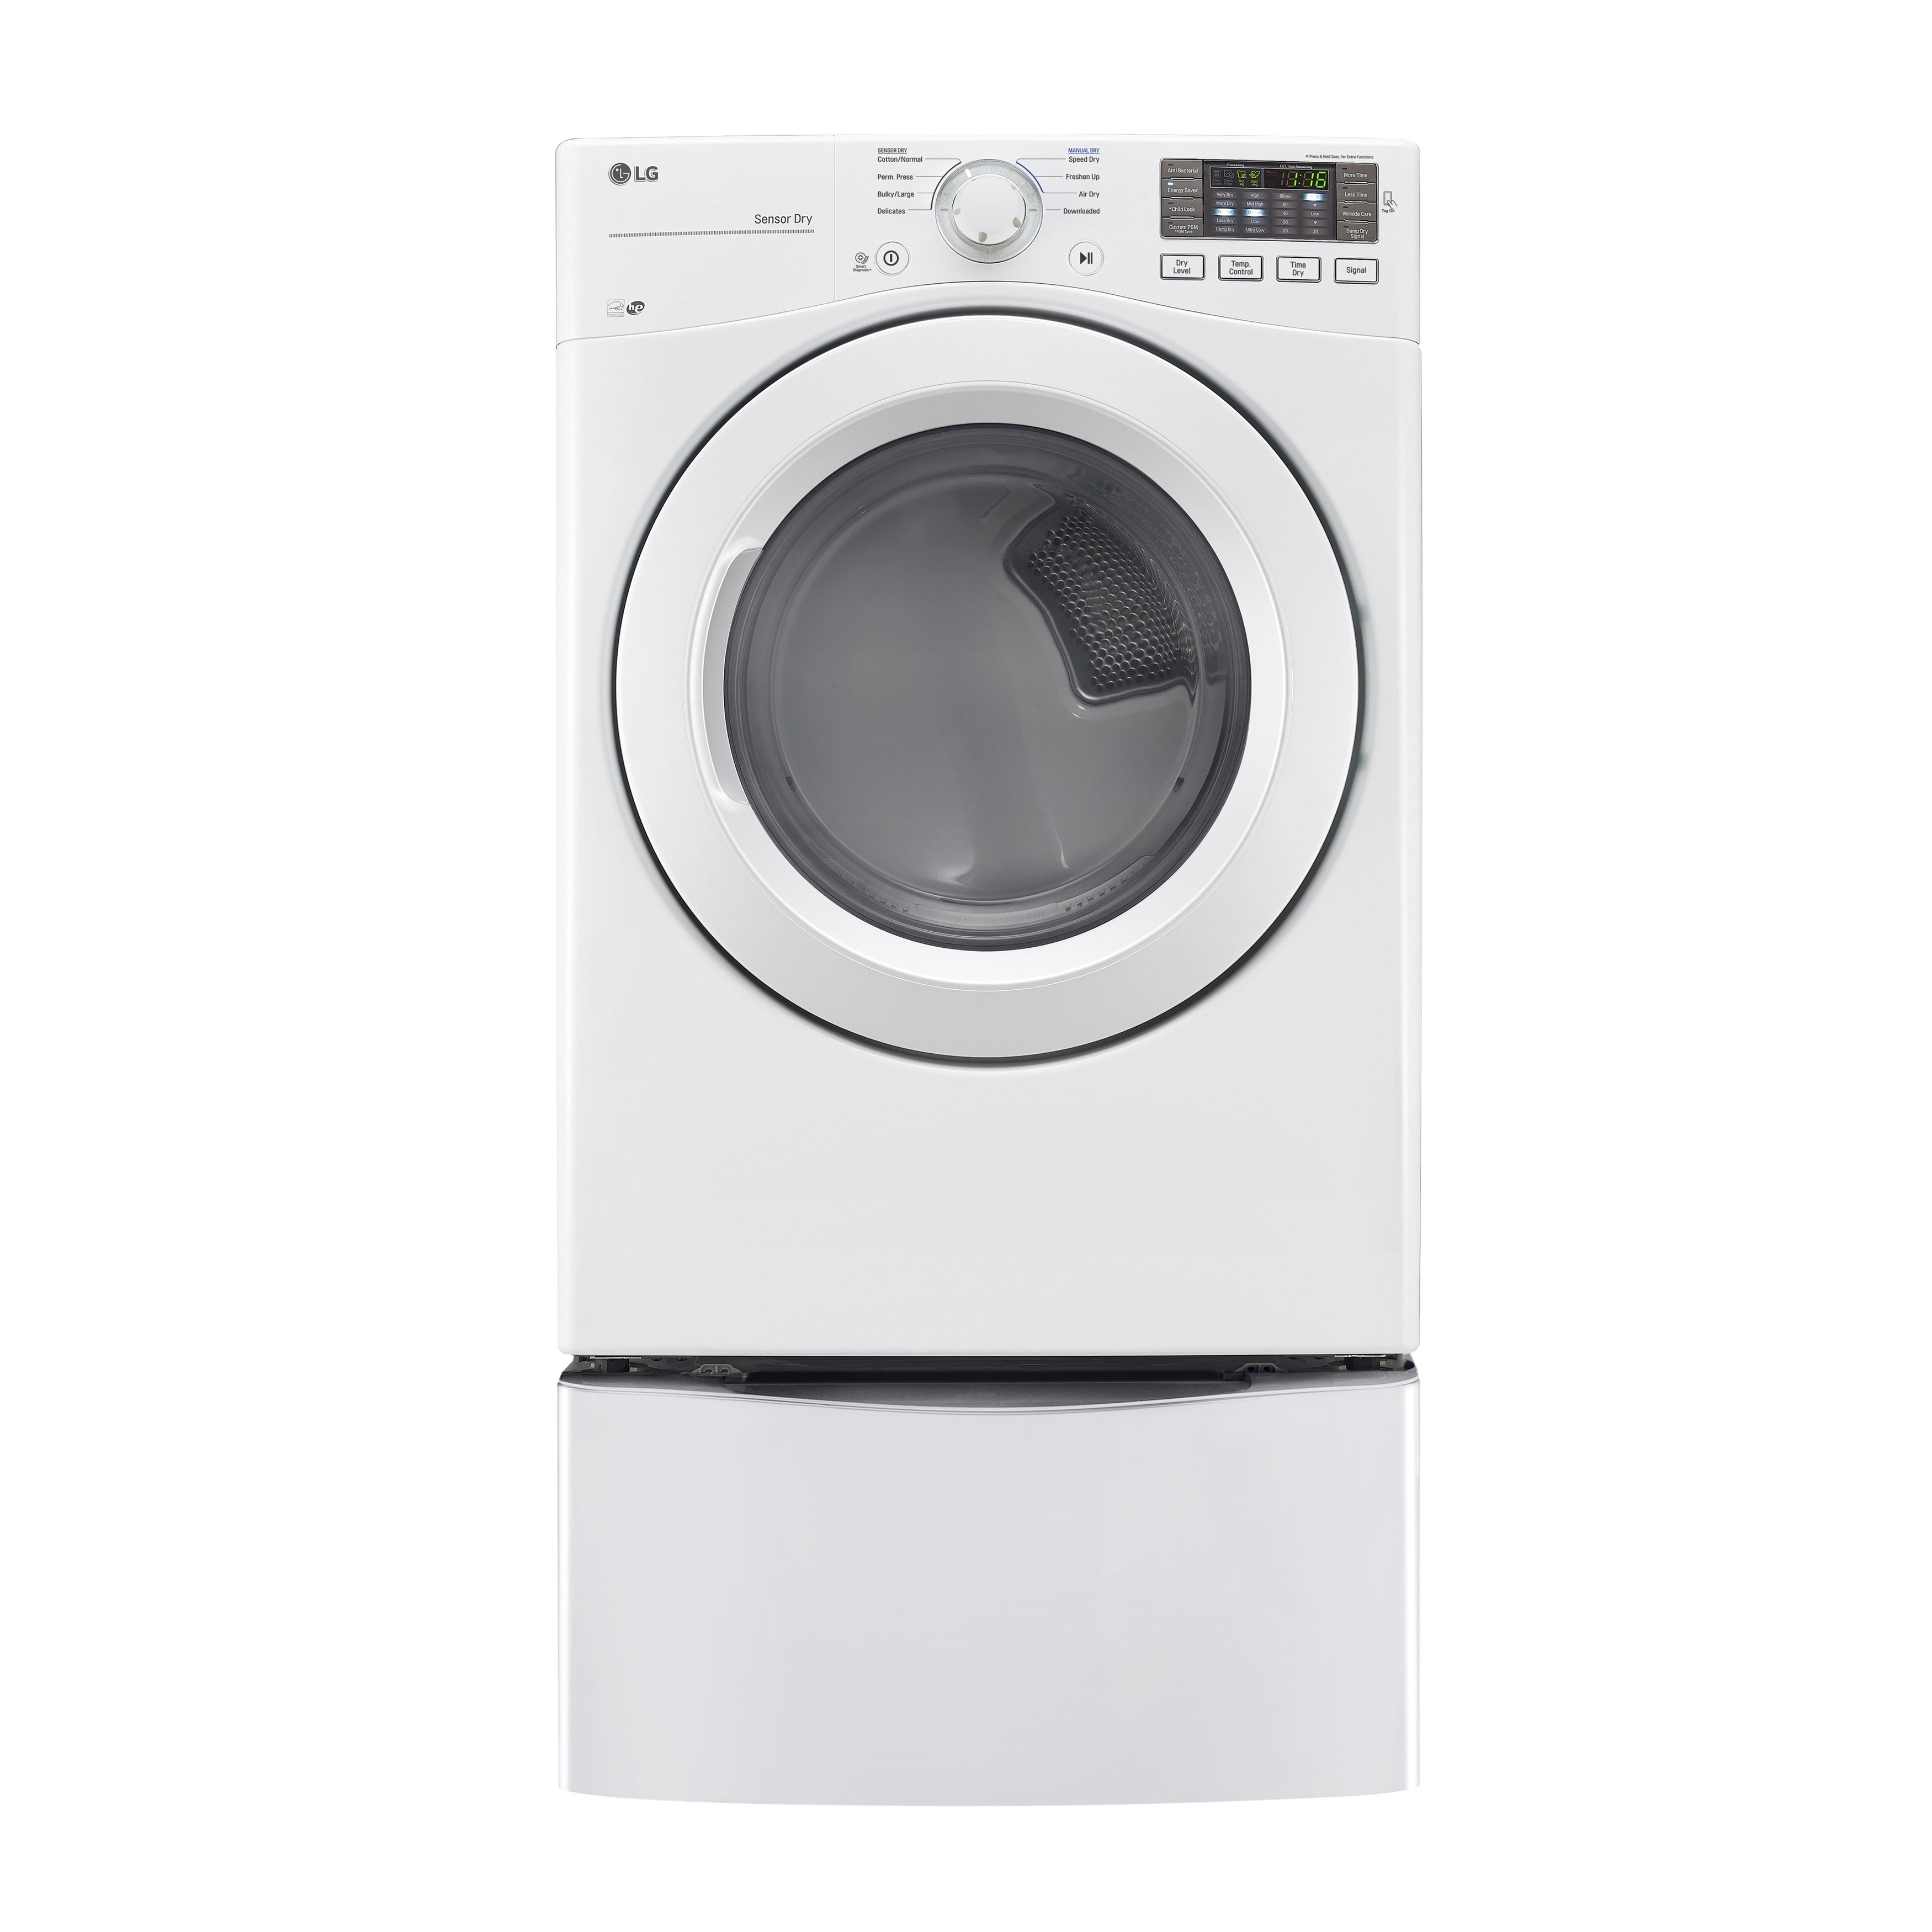 LG DLE3180W 7.4 cu. ft. Ultra Large Capacity Dryer with N...